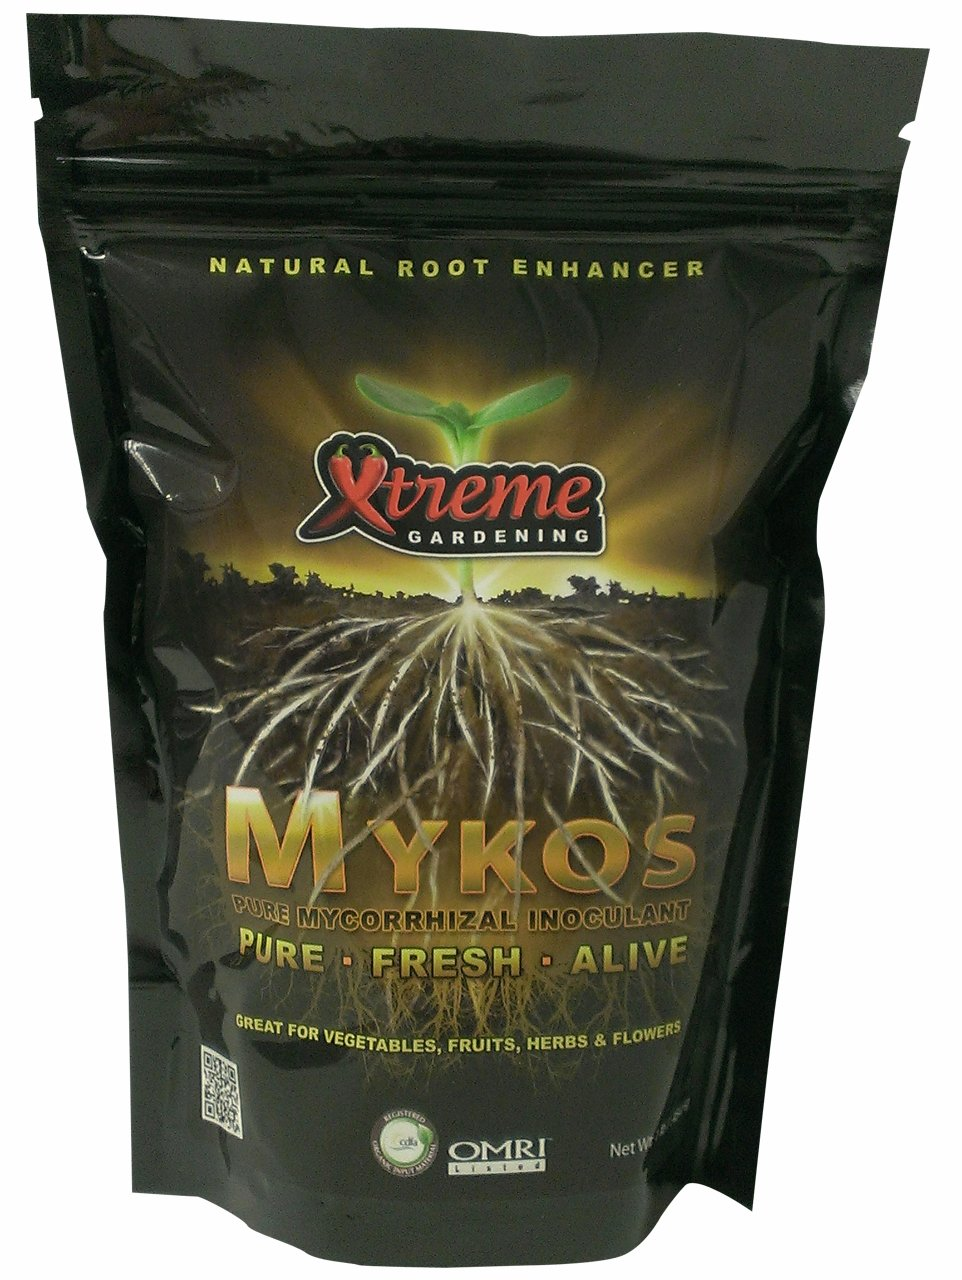 http://www.amazon.com/s/ref=nb_sb_noss?url=search-alias%3Daps&field-keywords=mycorrhizae